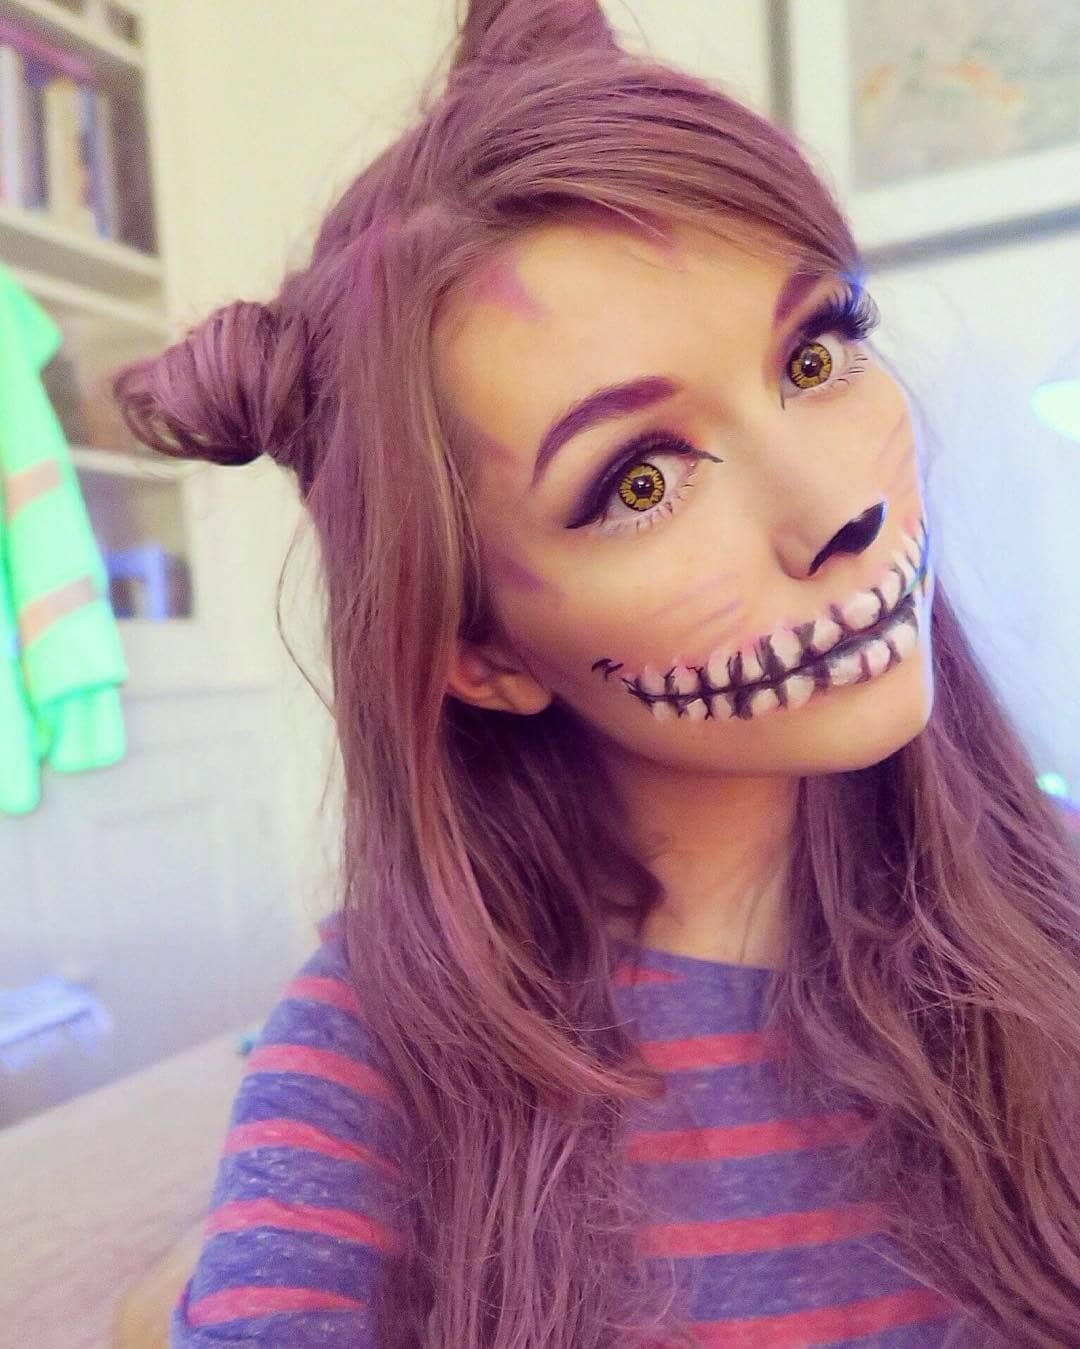 Smiley and Skeletal Cat-Girl